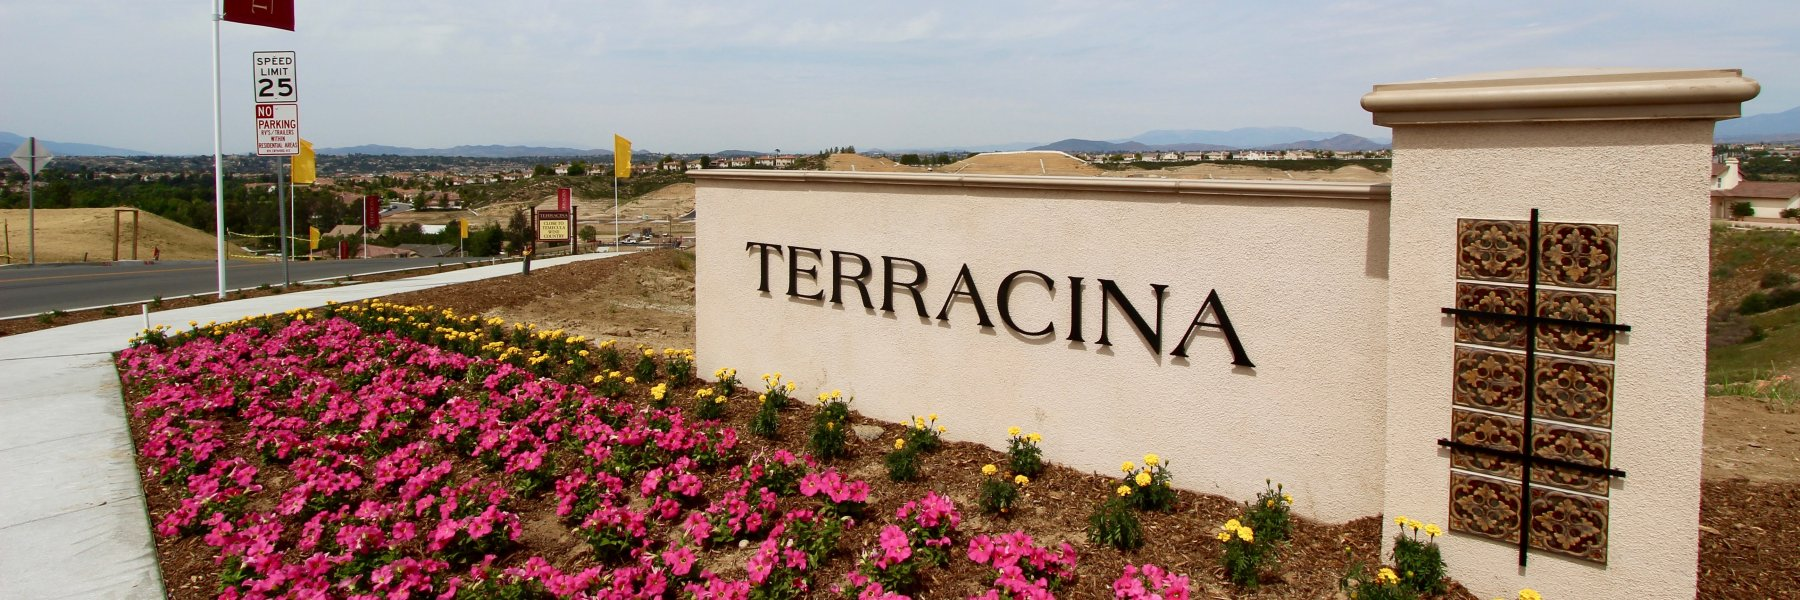 Terracina is a community of homes in Temecula California